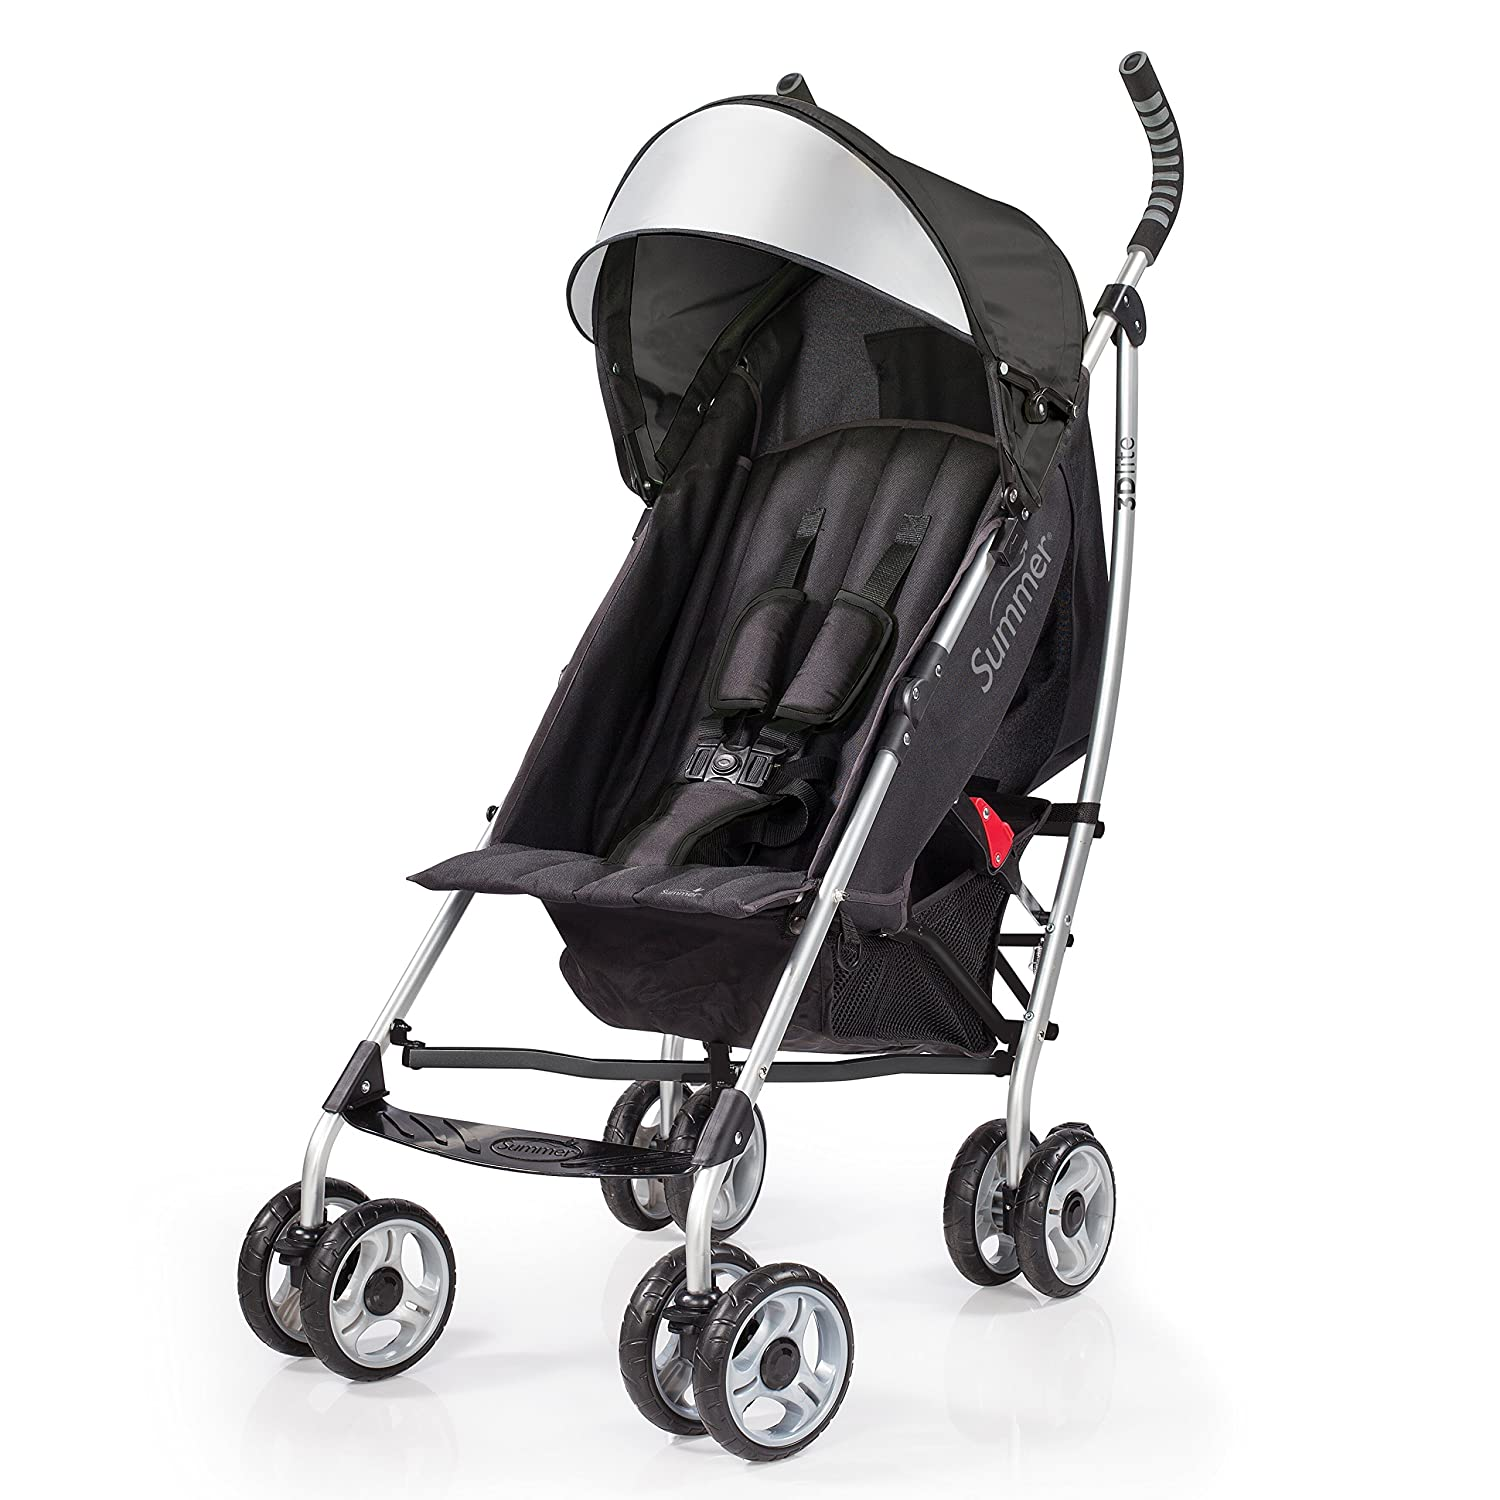 Amazon.com : Summer Infant 3Dlite Convenience Stroller, Black : Baby